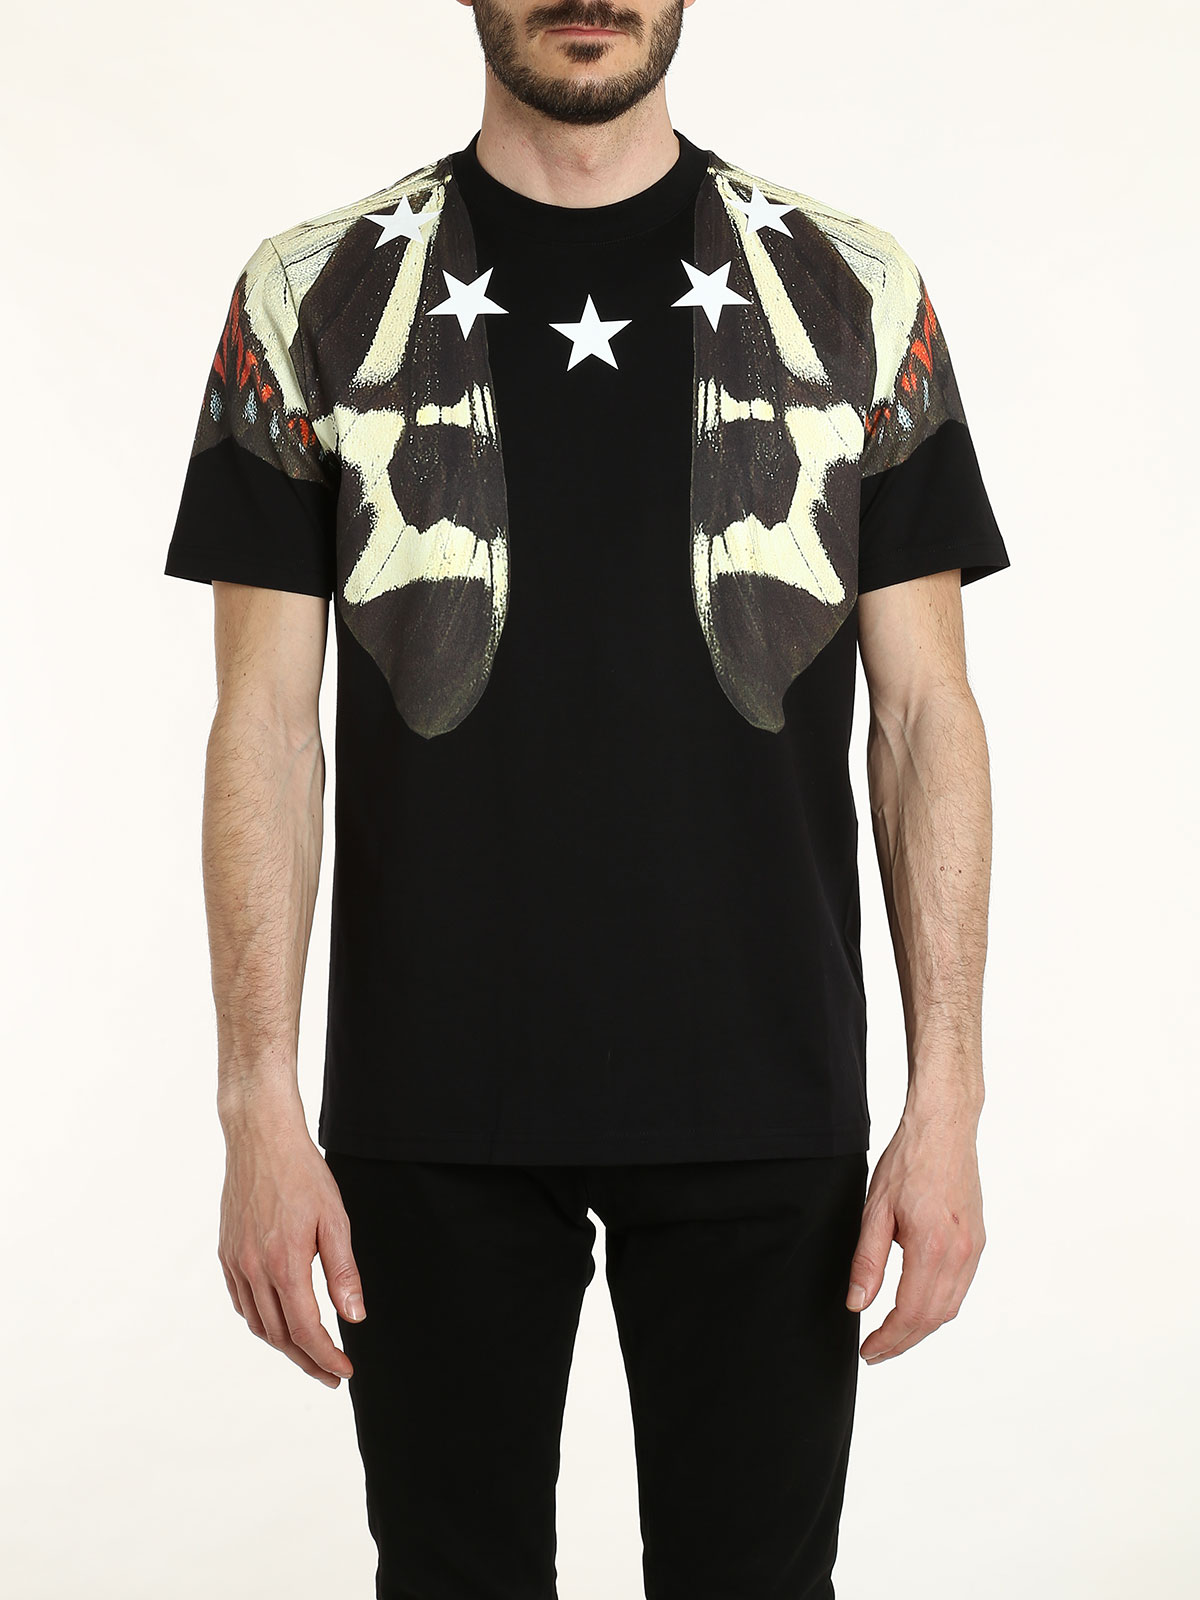 Butterfly and star printed t shirt by givenchy t shirts for Givenchy 5 star shirt